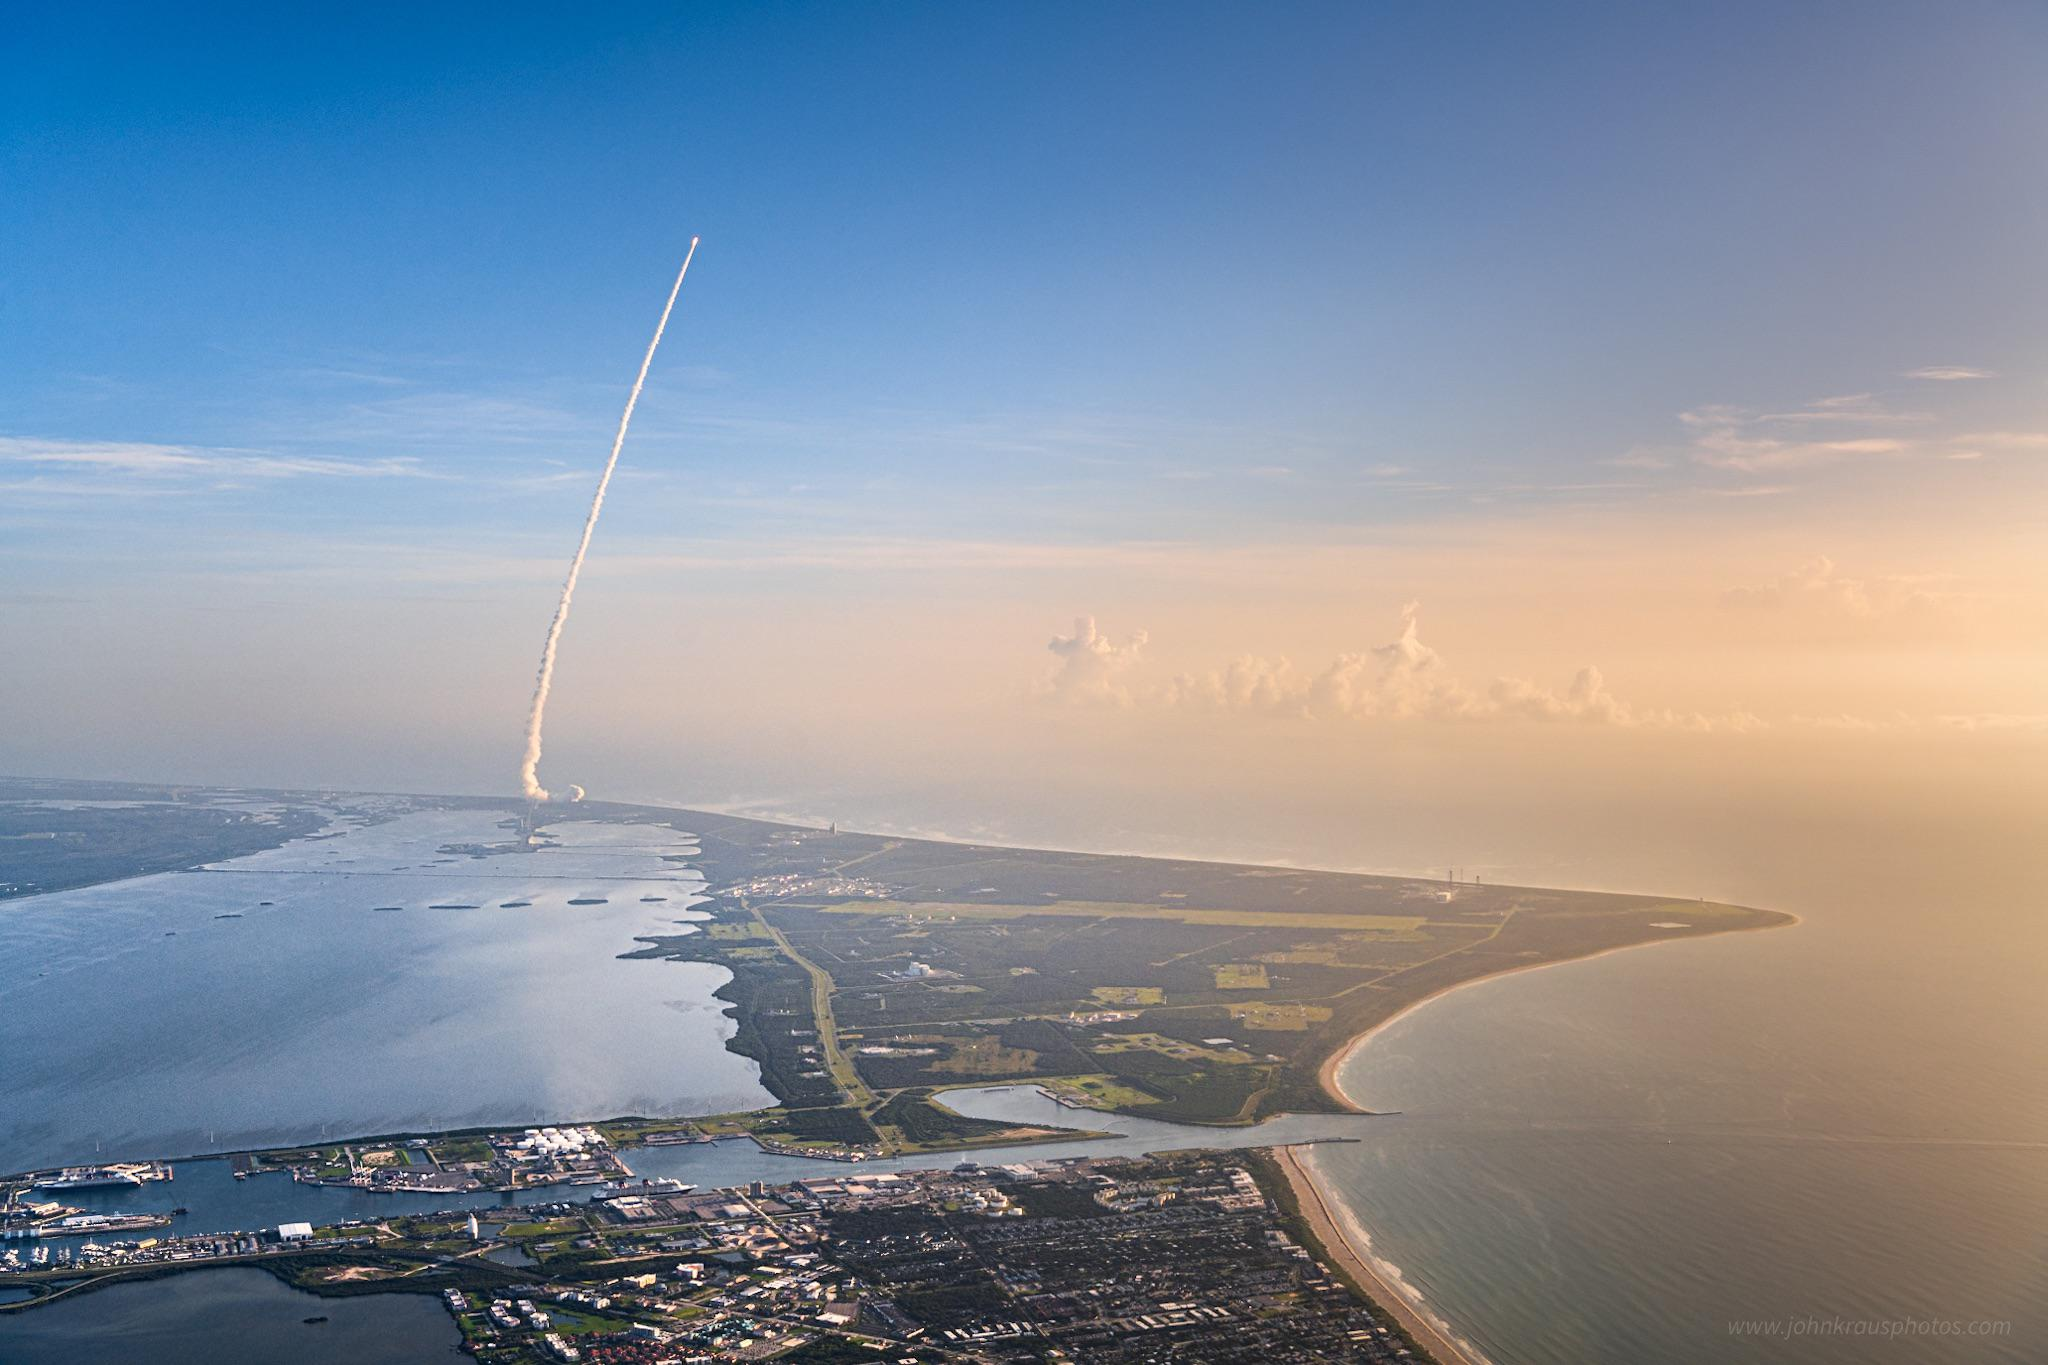 I rented a plane for a great view of the launch of NASA's newest Mars rover last month